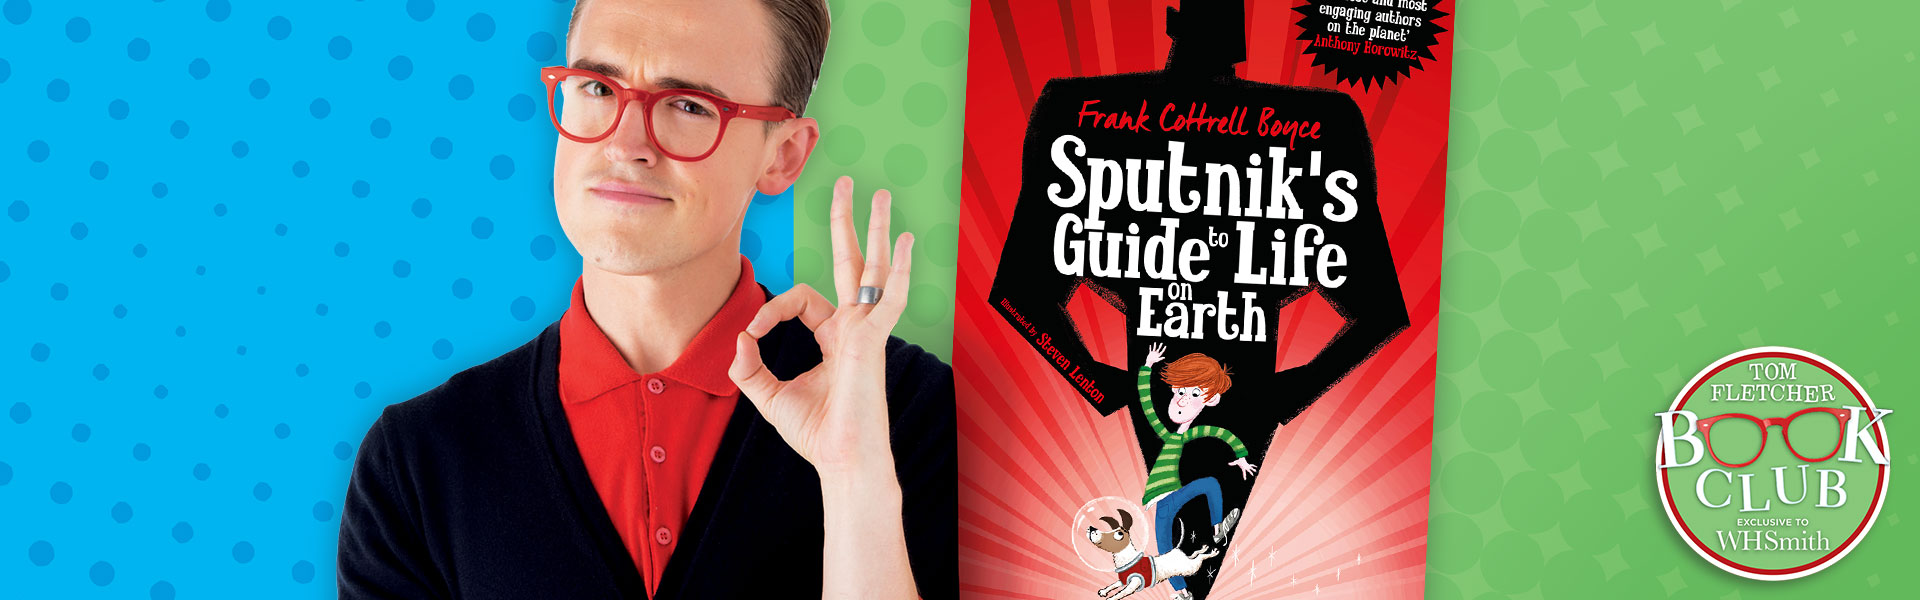 Tom Fletcher Book Club: Sputnik's Guide to Life on Earth by Frank Cottrell Boyce